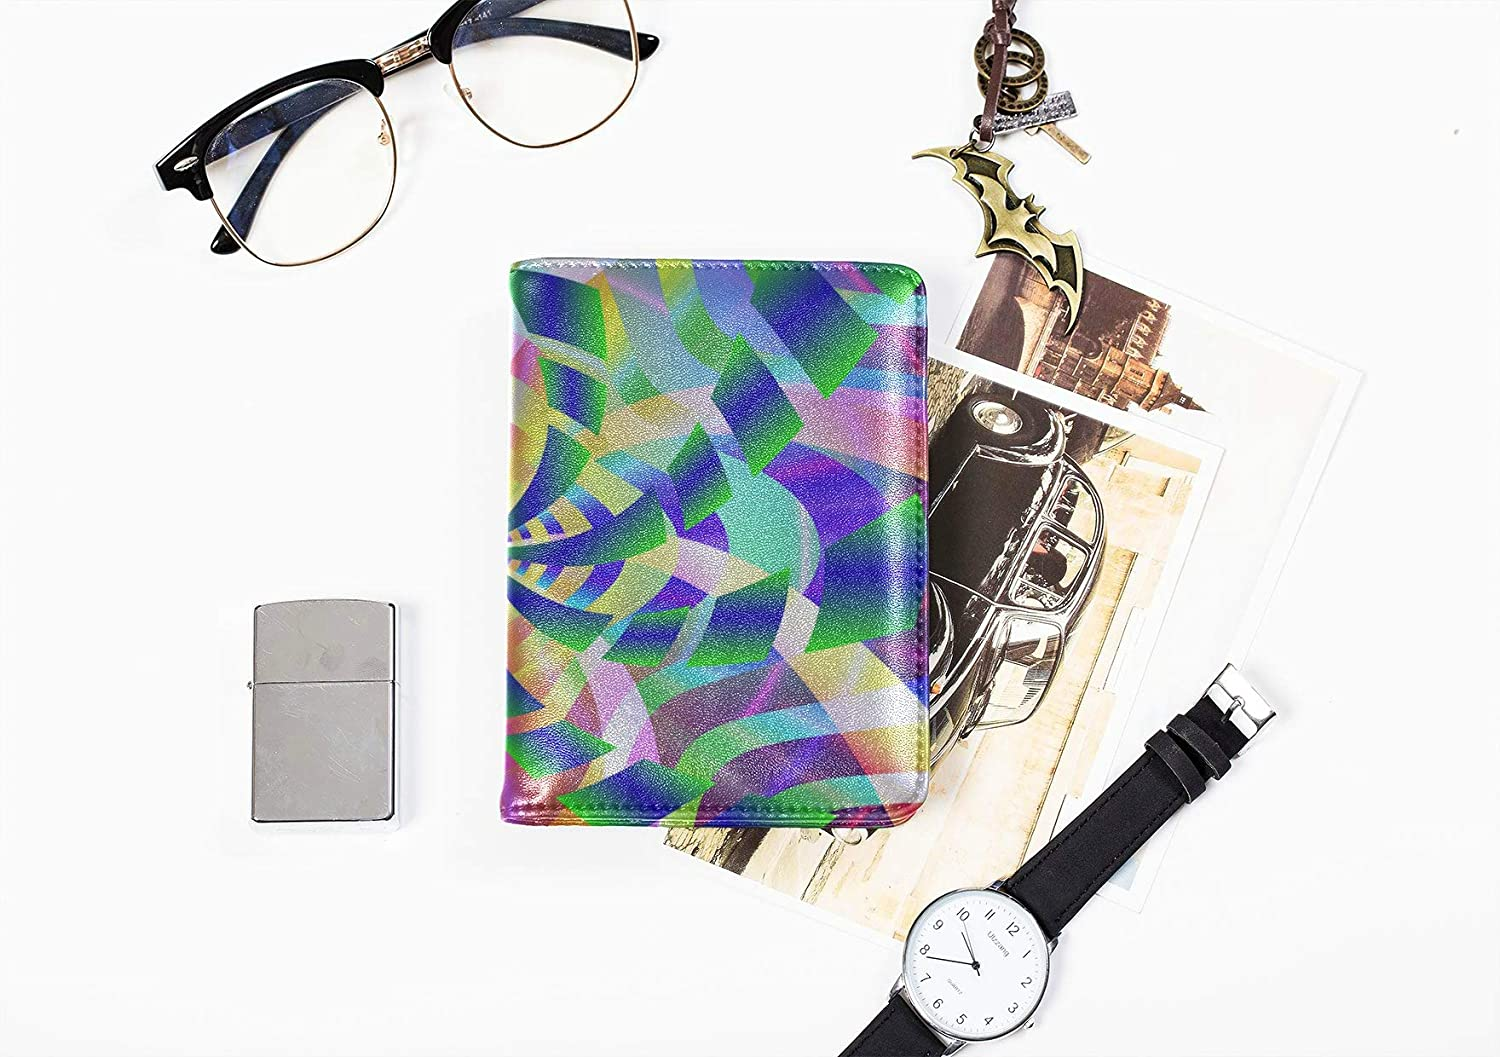 Passport Holder Travel Cover Case Fashion Cute National Colorful Painting Girls Passport Cover Multi Purpose Print Large Passport Cover Travel Wallets For Unisex 5.51x4.37 Inch